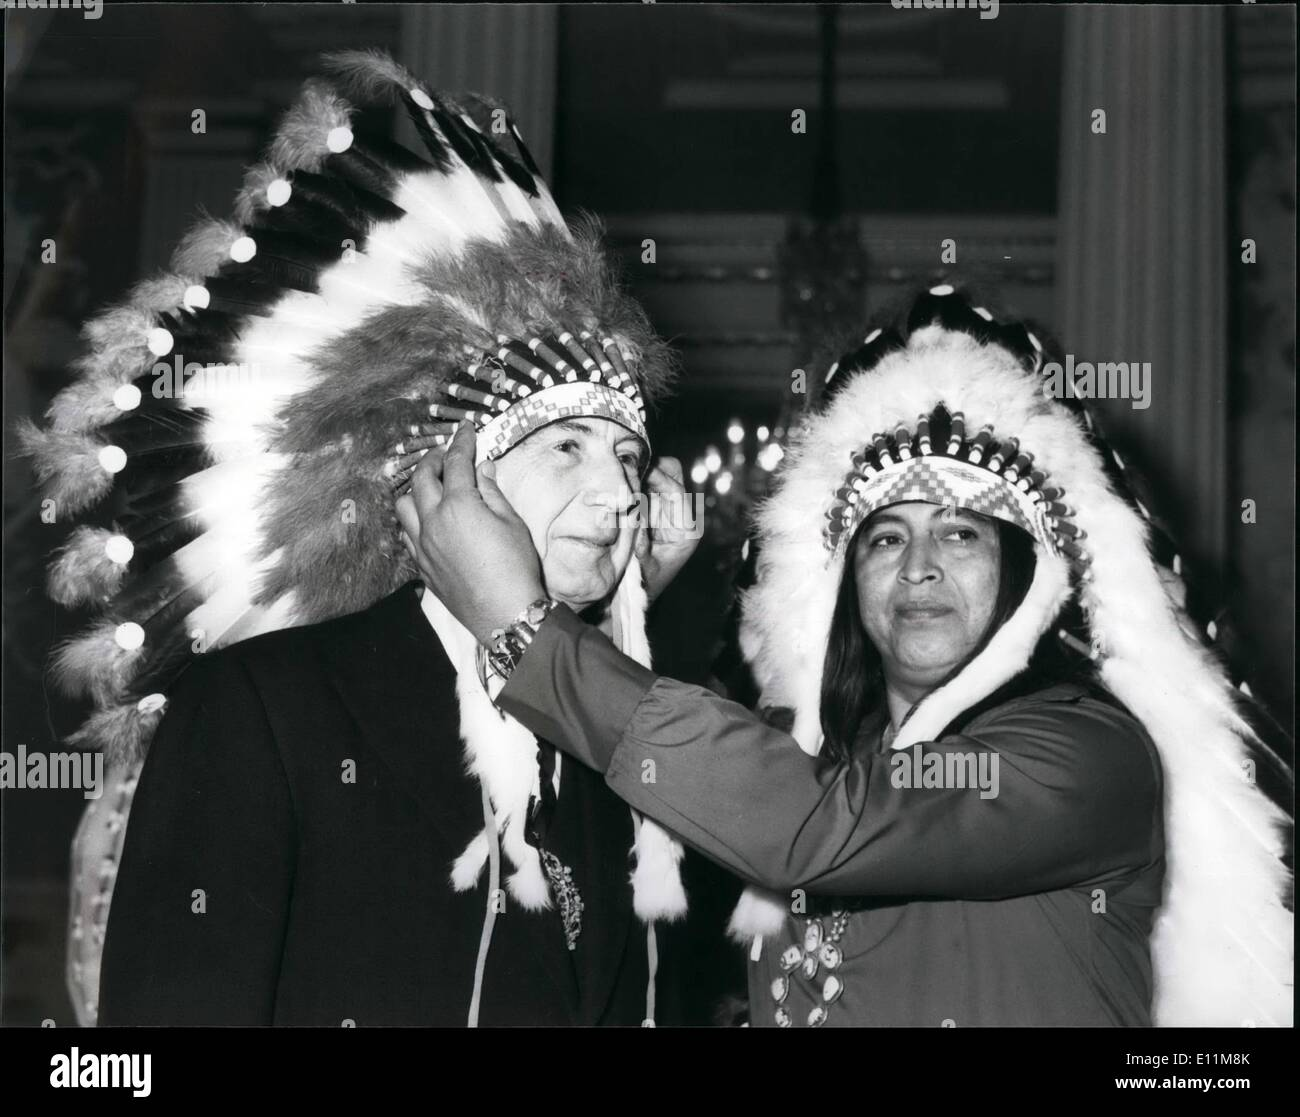 Feb. 02, 1979 - Lord Mayor Presented With Indian Head Dress: At the Mansion House today the Lord Mayor Sir Kenneth Cork, received Chief Joe Sierra, of the Tigua Indian Tribe, and is also the Assistant to the Mayo of El Paso for Indian Affairs. He is with a party of 50 strong delegation of representatives from the tourist industry, promoting travel to Texas under the suspicious of the US Travel Service. Photo Shows Chief Joe Sierra, is seen placing the headdress on the Lord Mayor Sir Kenneth Cork during his visit to the Mansion House today. - Stock Image